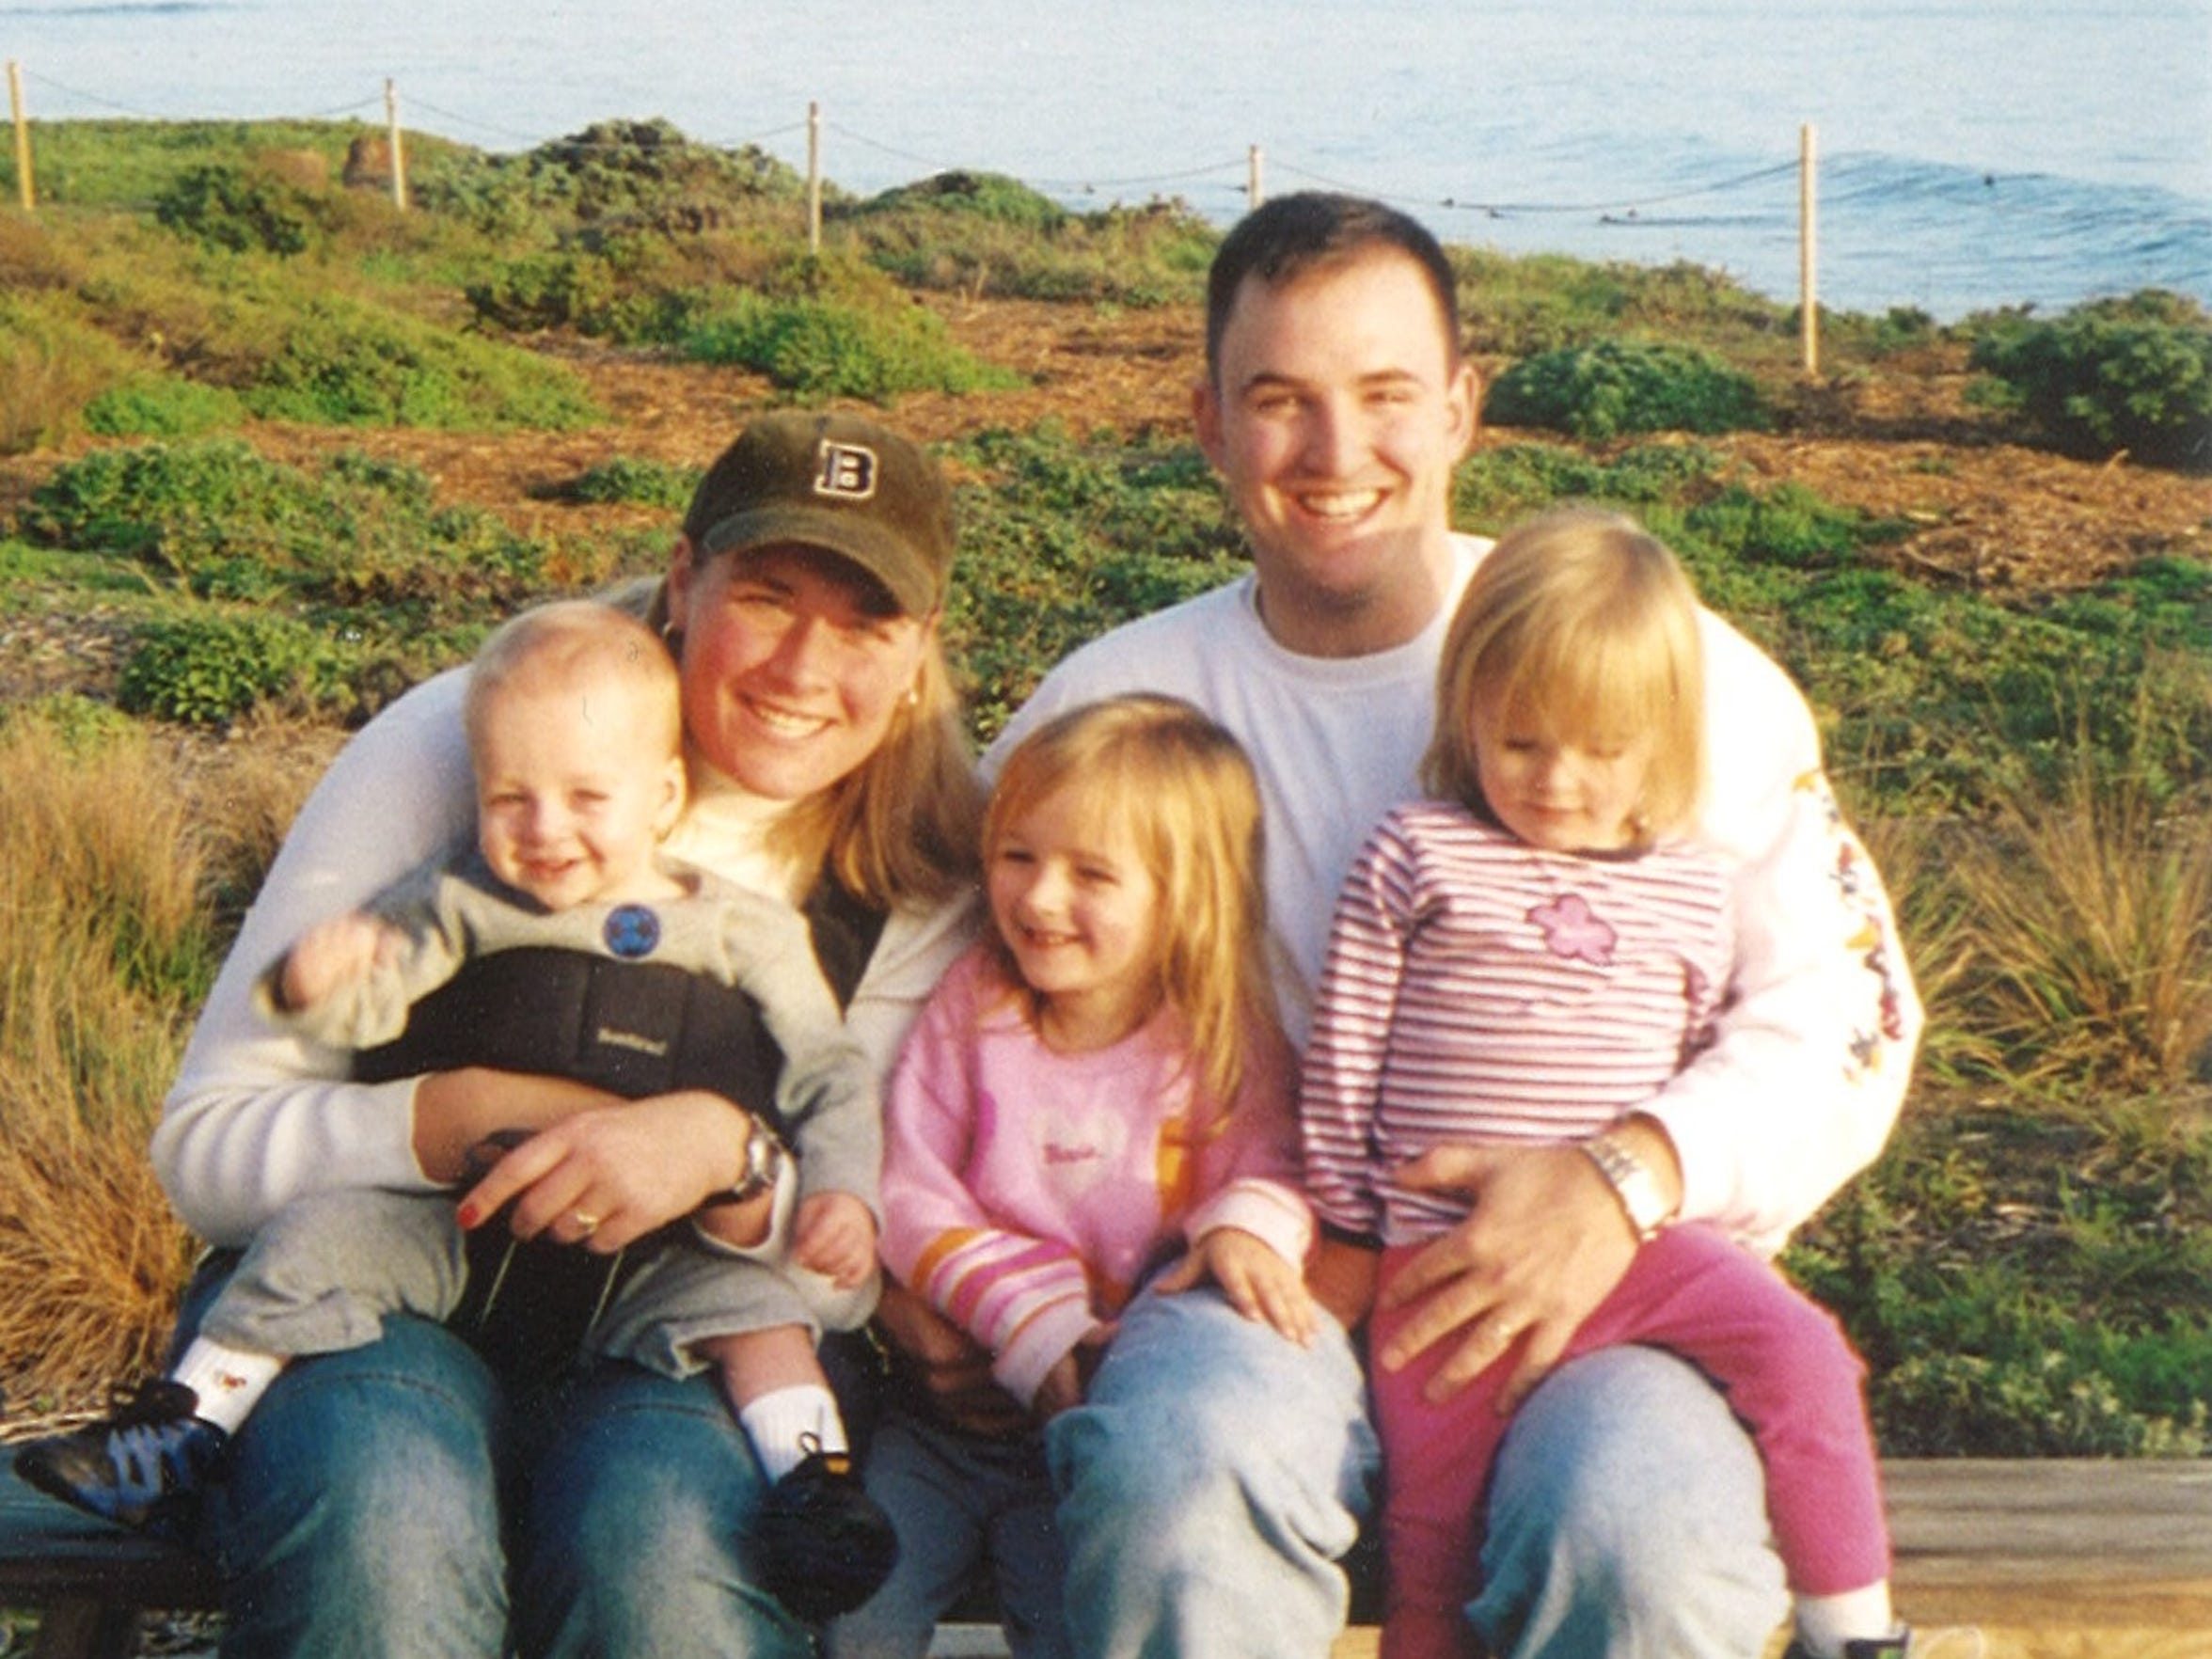 Emily and Devon Reese with their children.